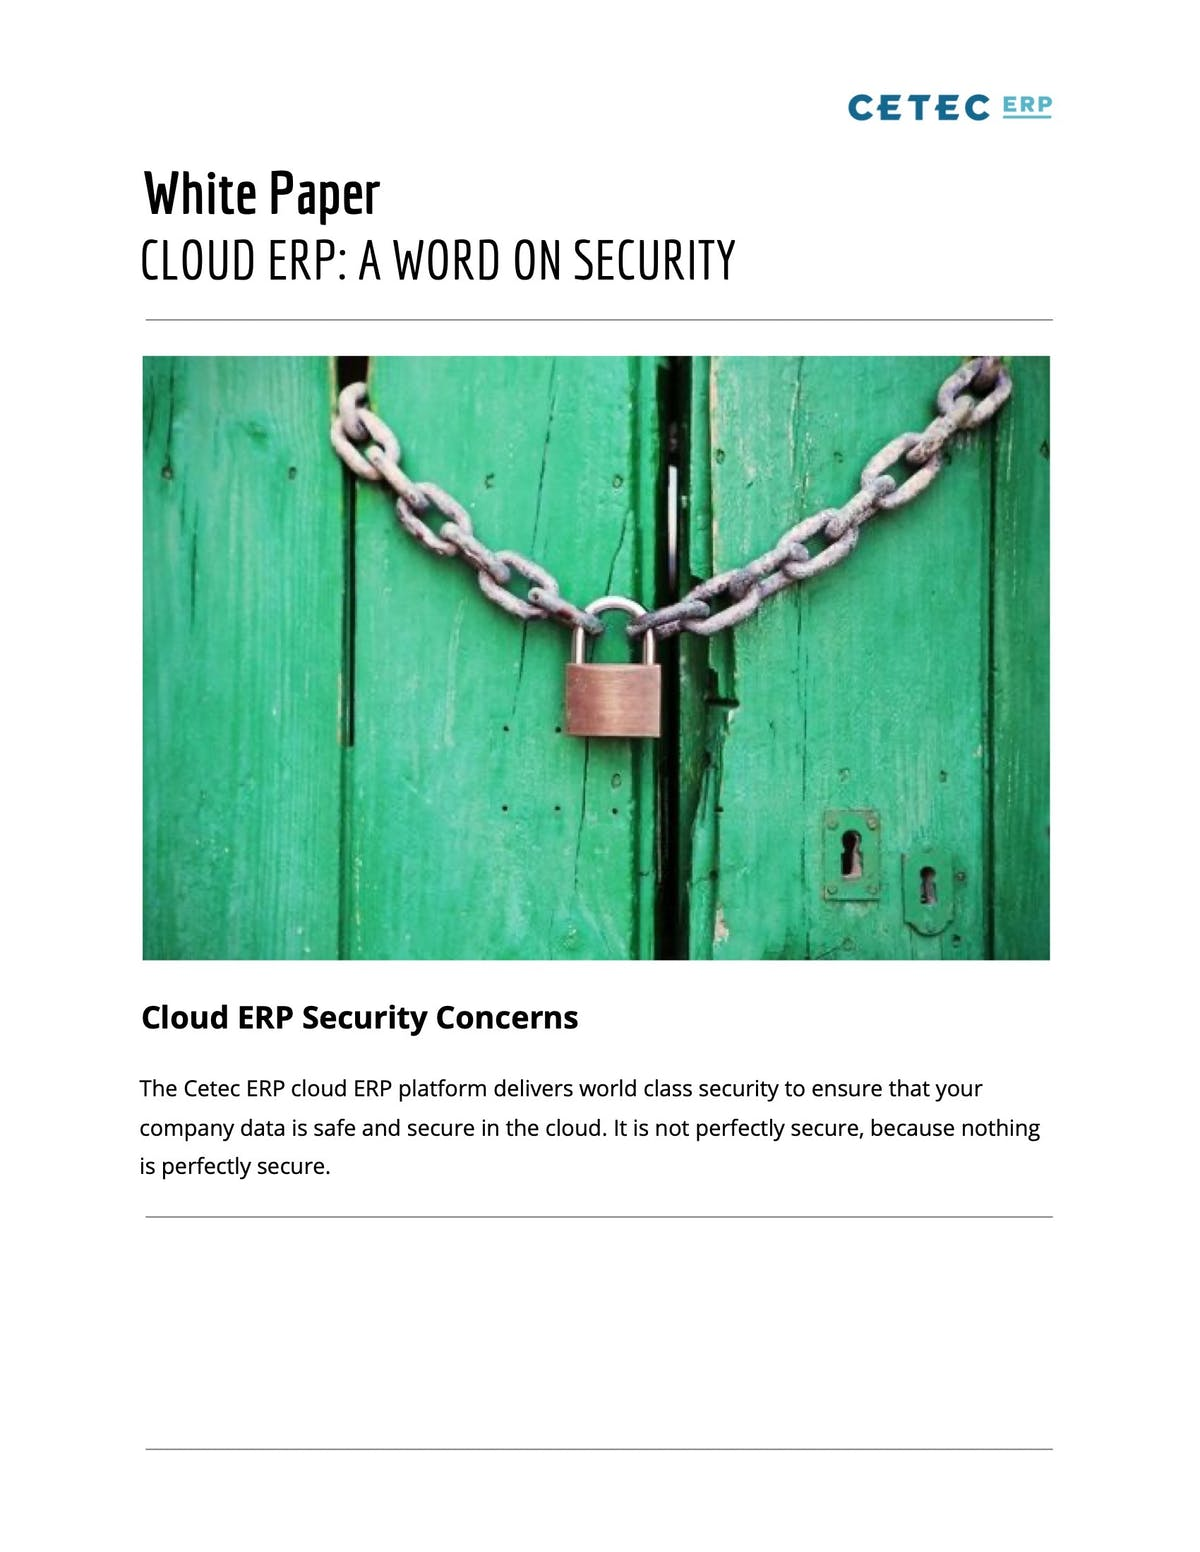 Cetec ERP White Paper - Cloud ERP: A Word on Security